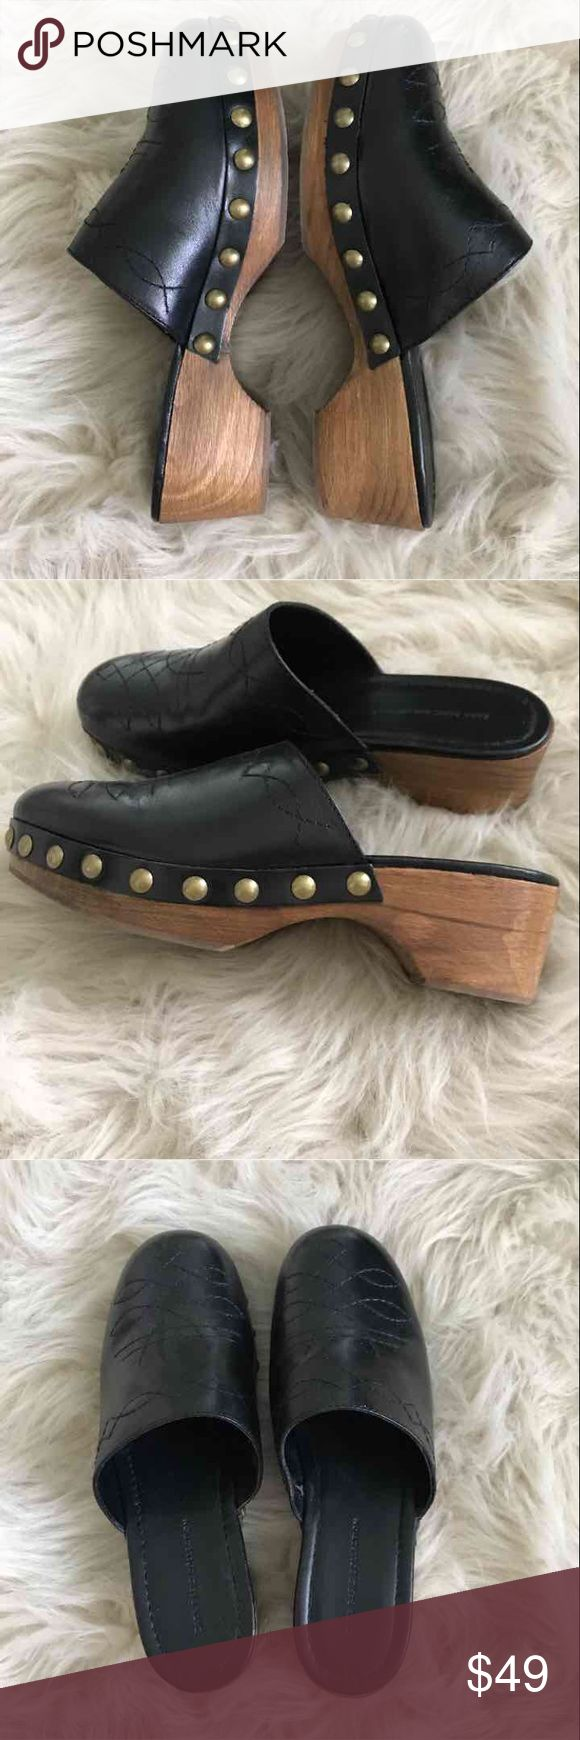 Zara wooden clogs worn 1 time Beautiful real wooden leather clogs by Zara, worn 1 time. Only selling because they are a bit too big for me:/ Zara Shoes Mules & Clogs